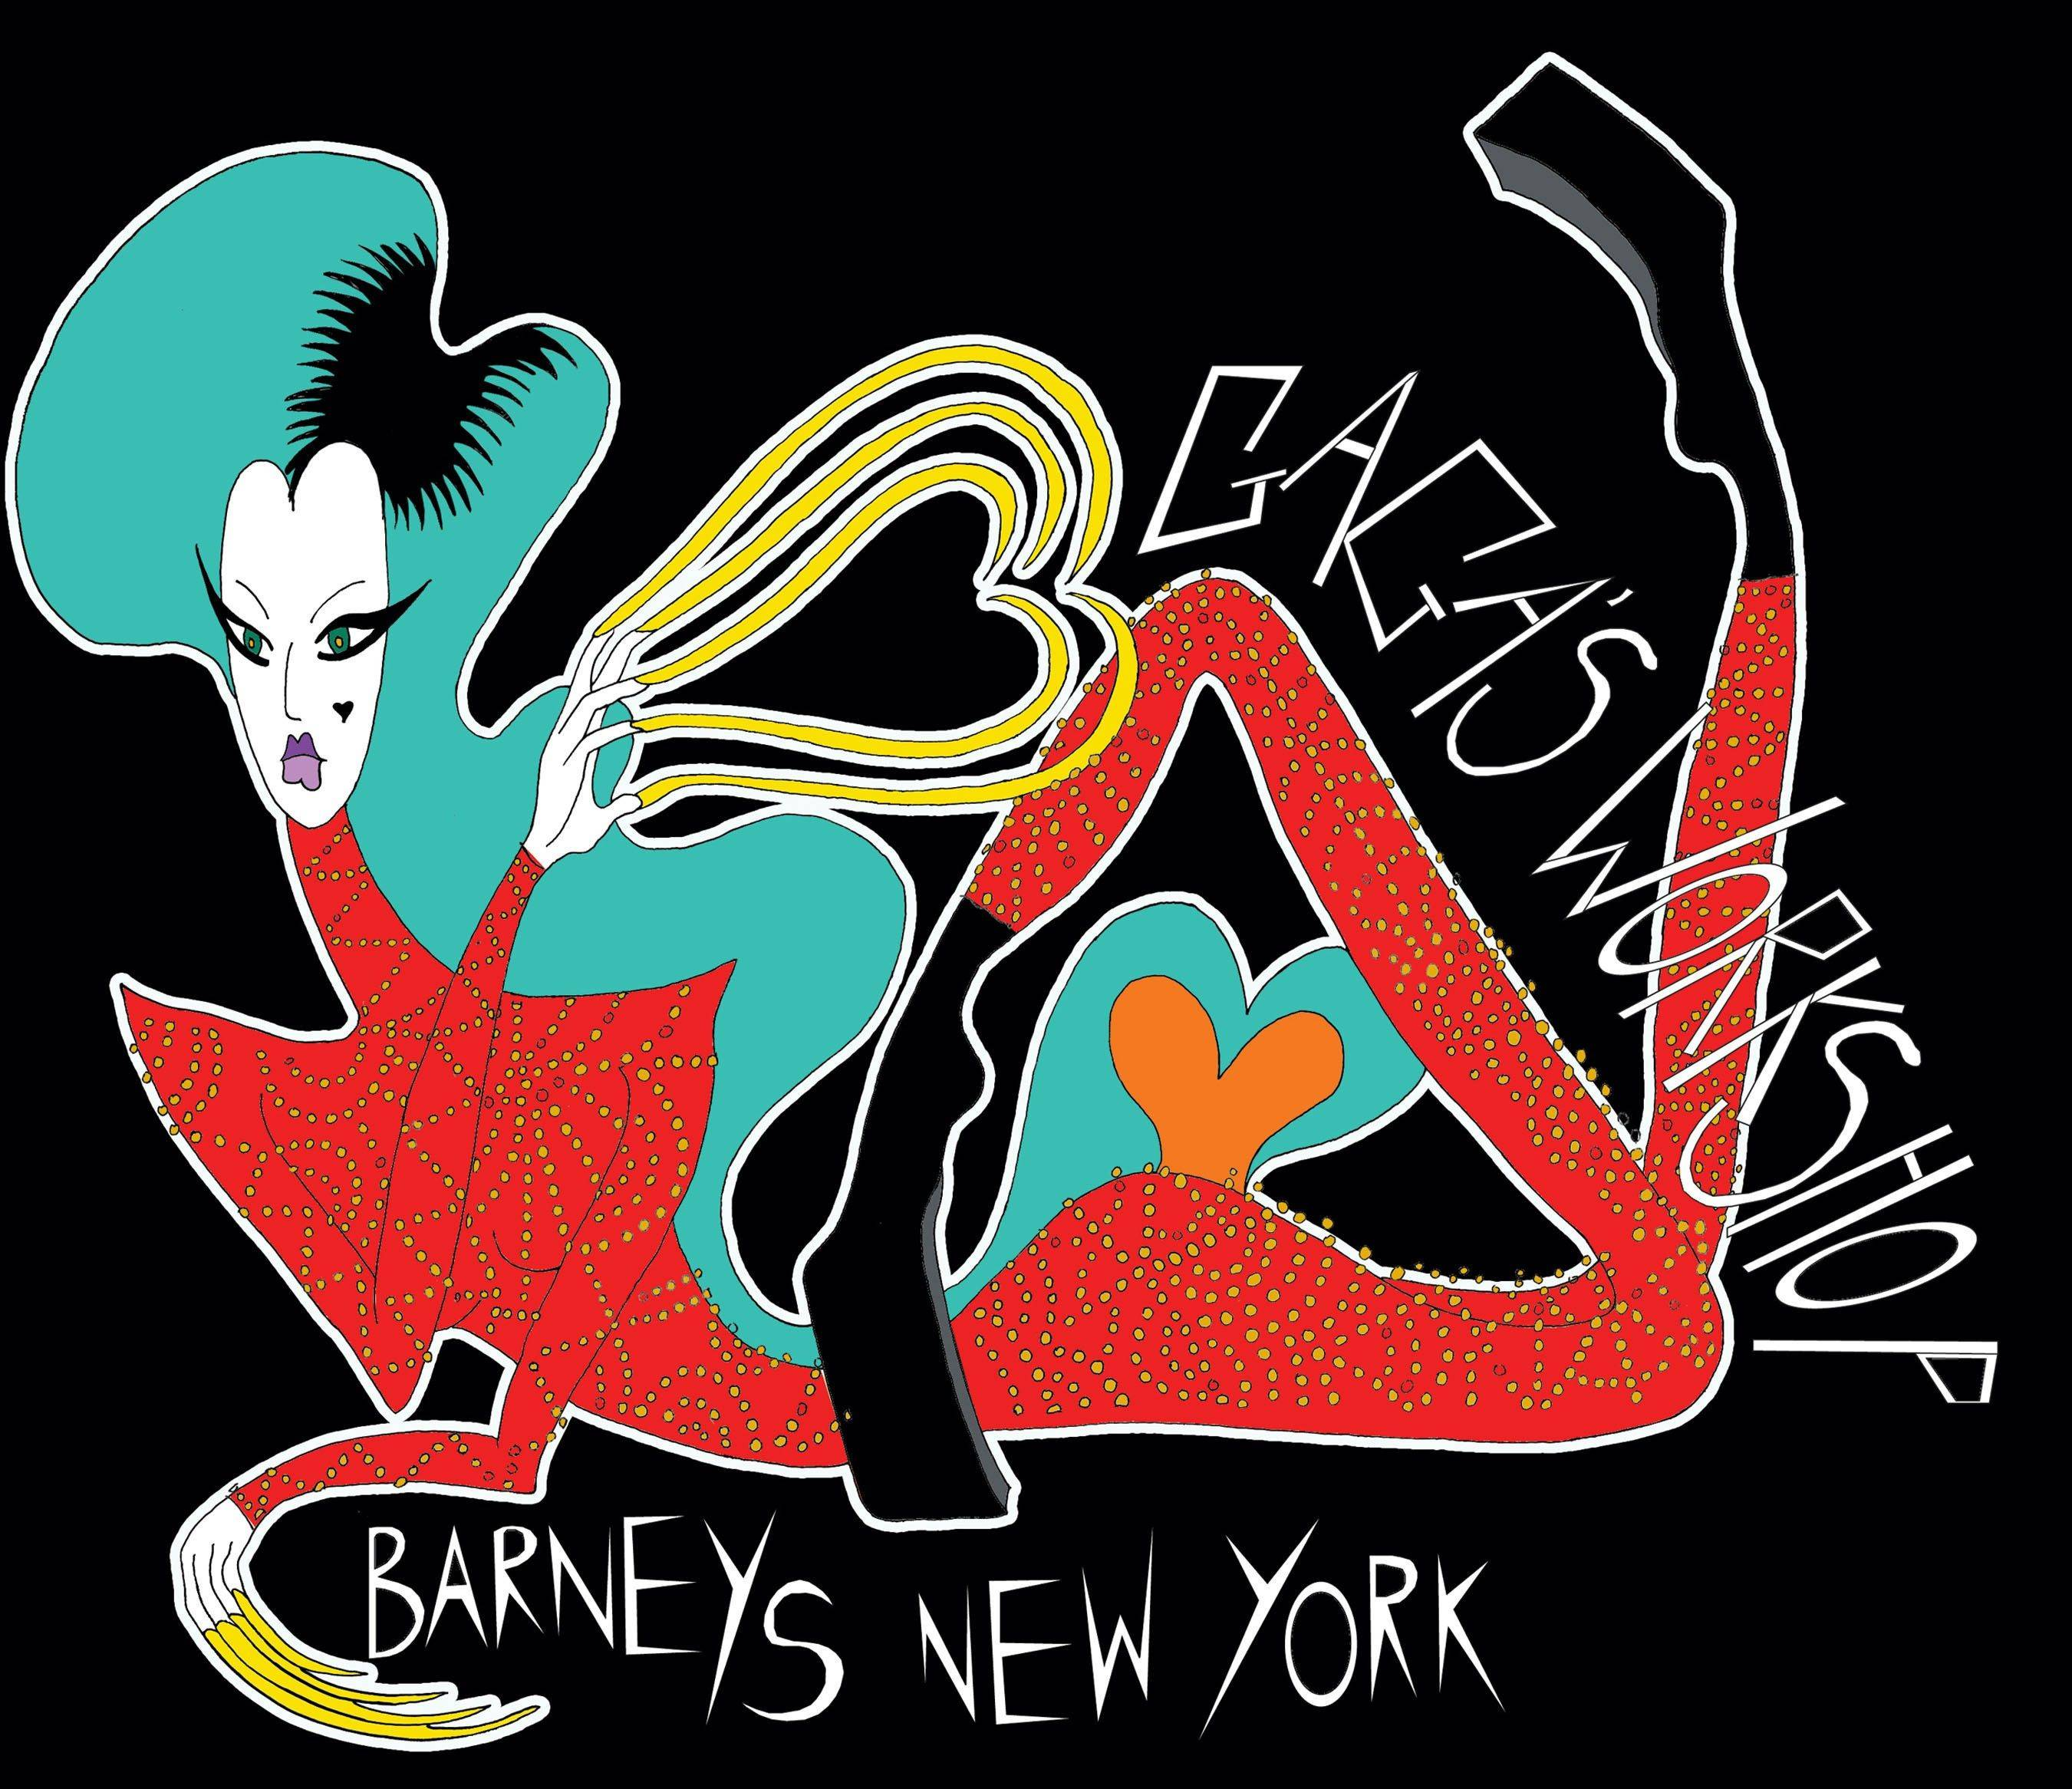 Artwork is shown from the Barneys New York and Lady Gaga Holiday Campaign. The singer and her team are going to reinterpret Santa's workshop and put it on display at Barneys. She'll get an entire floor and take over the coveted windows starting in mid-November at the retailer's flagship Madison Avenue store.